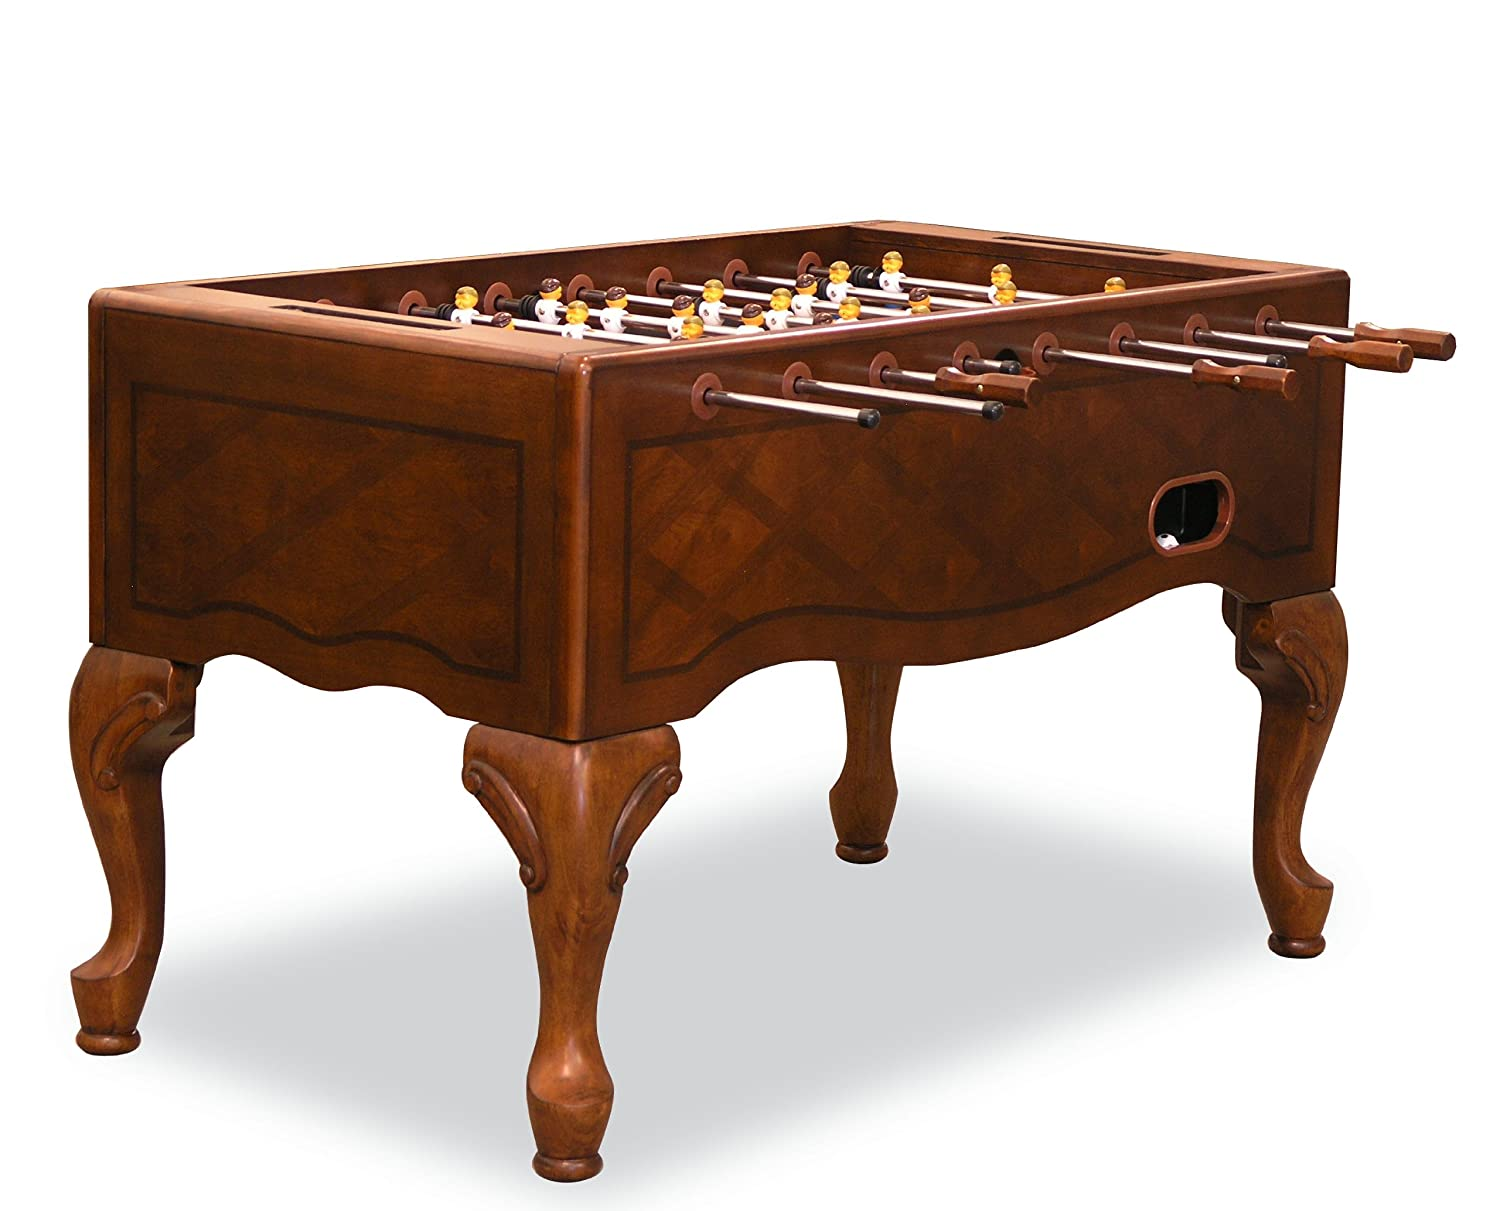 Amazon.com : Fairview Game Rooms Traditional Style Foosball Table With  Queen Ann Legs (Chestnut) : Sports U0026 Outdoors